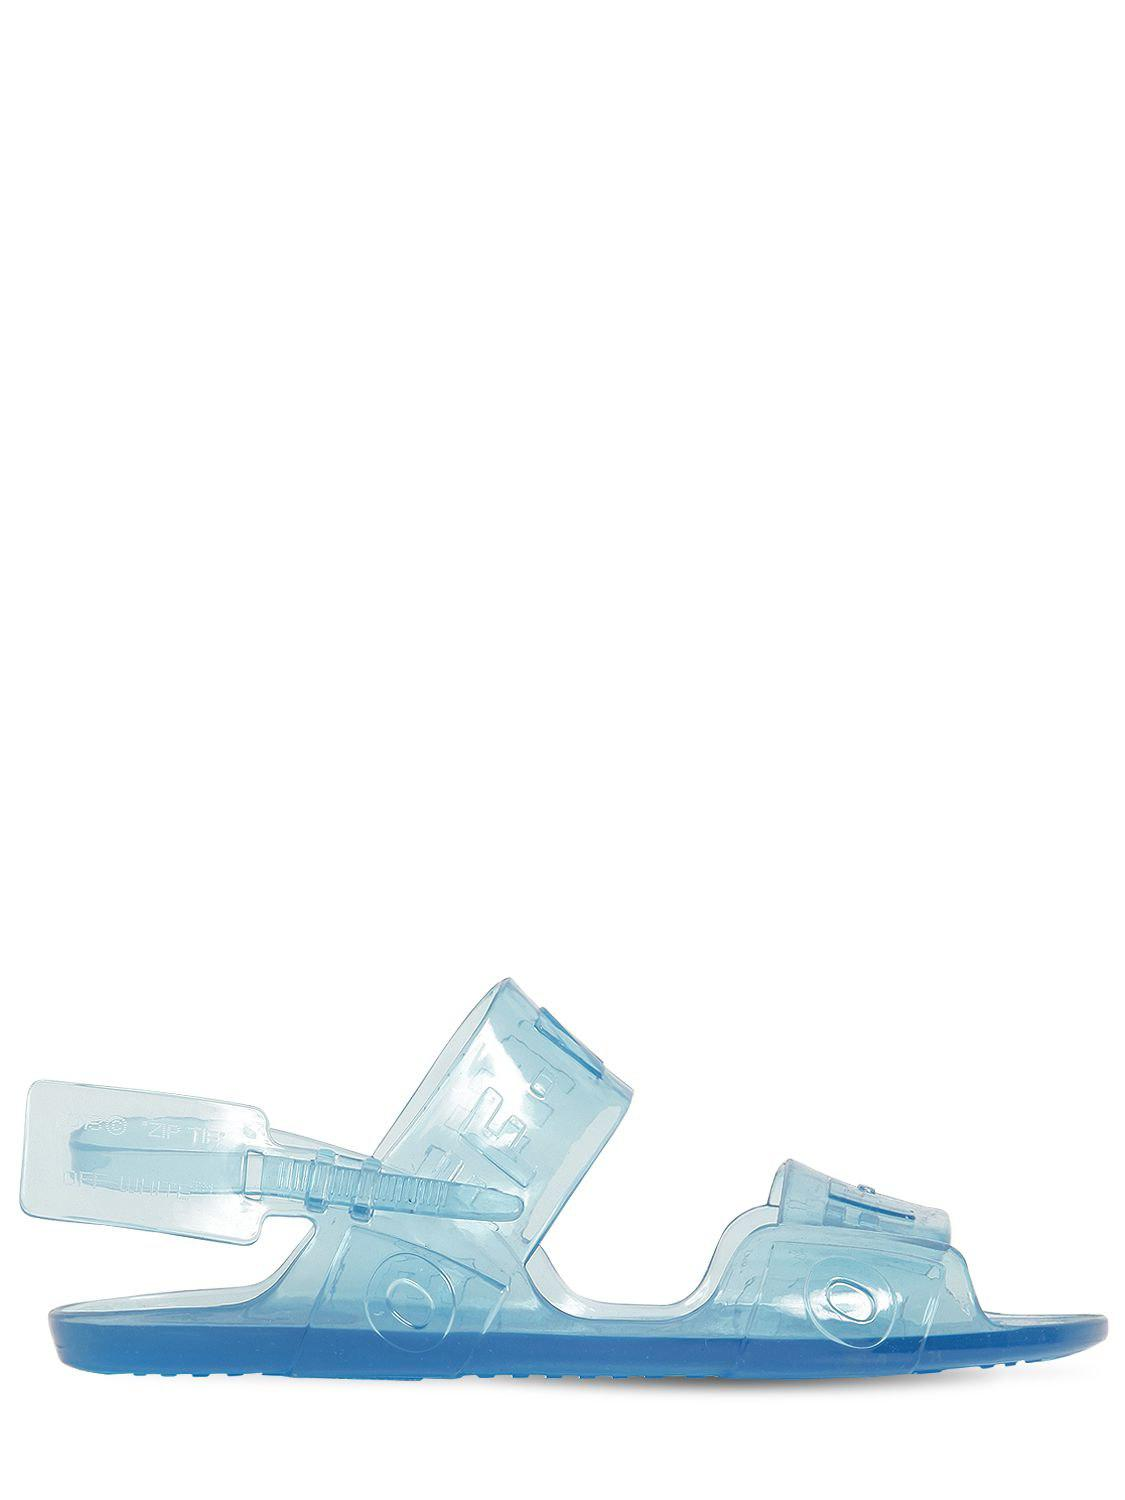 39e29366077 Lyst - Off-White c o Virgil Abloh Transparent Logo Sandals in Blue ...